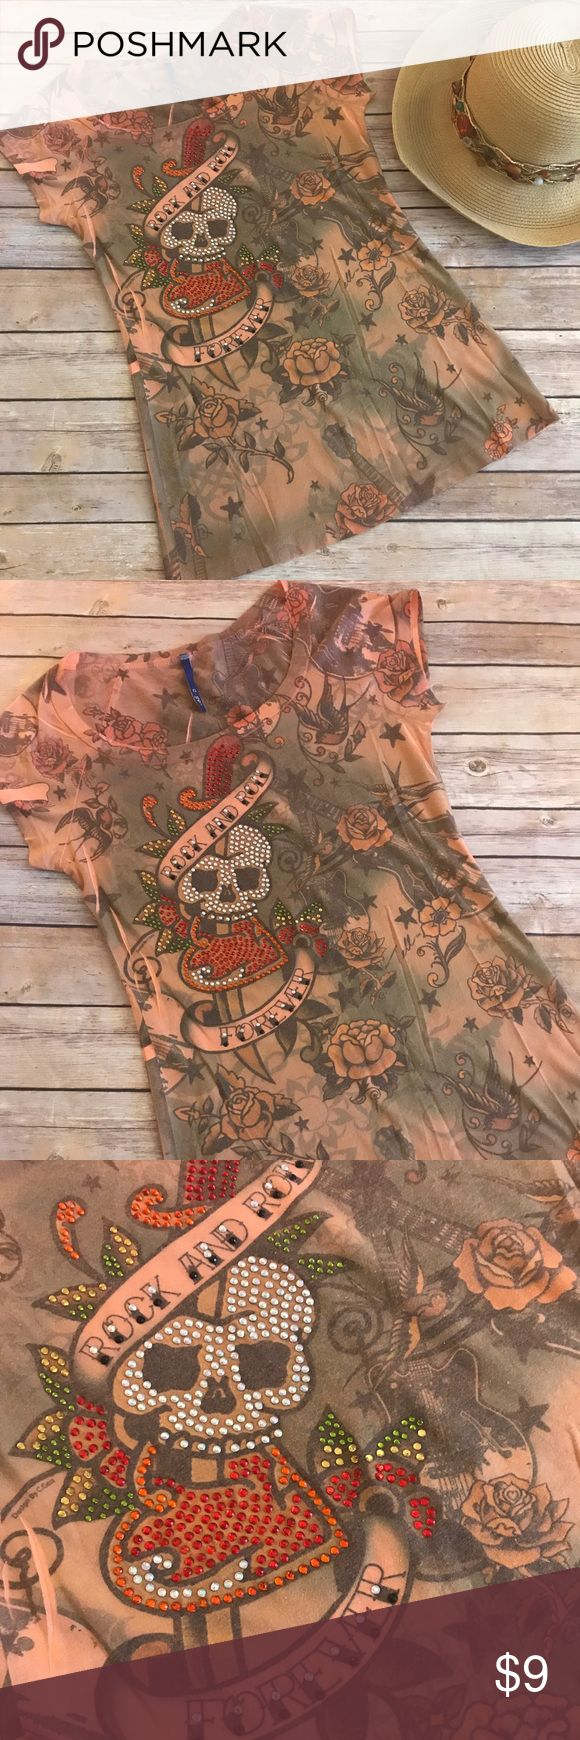 """Floral Graphic Tee 🌺Rock and Roll Forever🌺 Fabulous floral and guitar graphic tee """"Rock and Roll Forever"""" from C-gen.  Muted colors of peach and green make the skeleton and heart design pop on this tee!  Pattern repeated on the back. Size S/M (no tag). Measures 15"""" flat across bust and 24"""" long. Rock on 🎸 C-gen Tops Tees - Short Sleeve"""